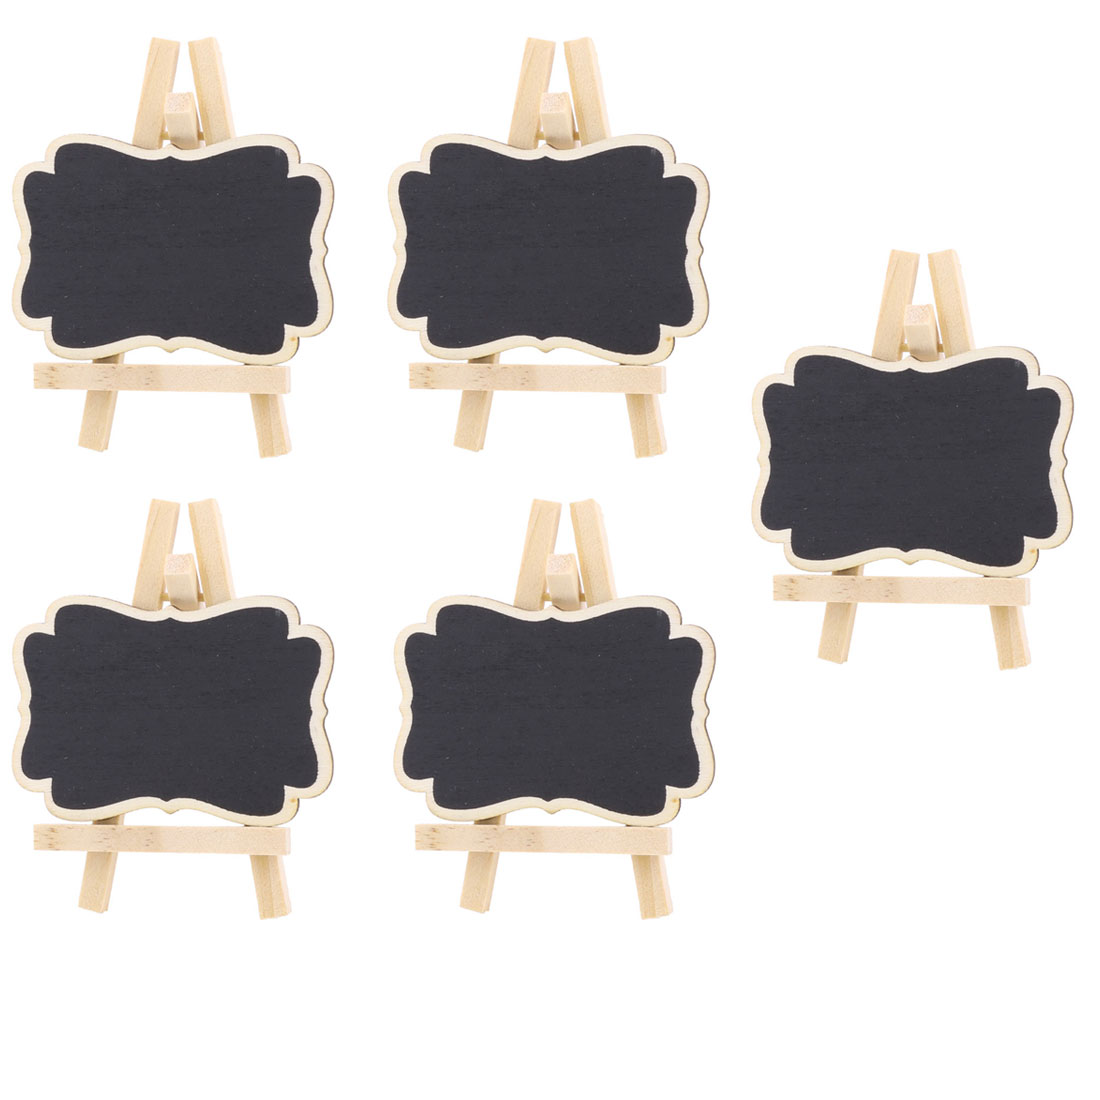 Wedding Wood Table Desktop Ornament Place Card Blackboard Chalkboard Black 5 Pcs